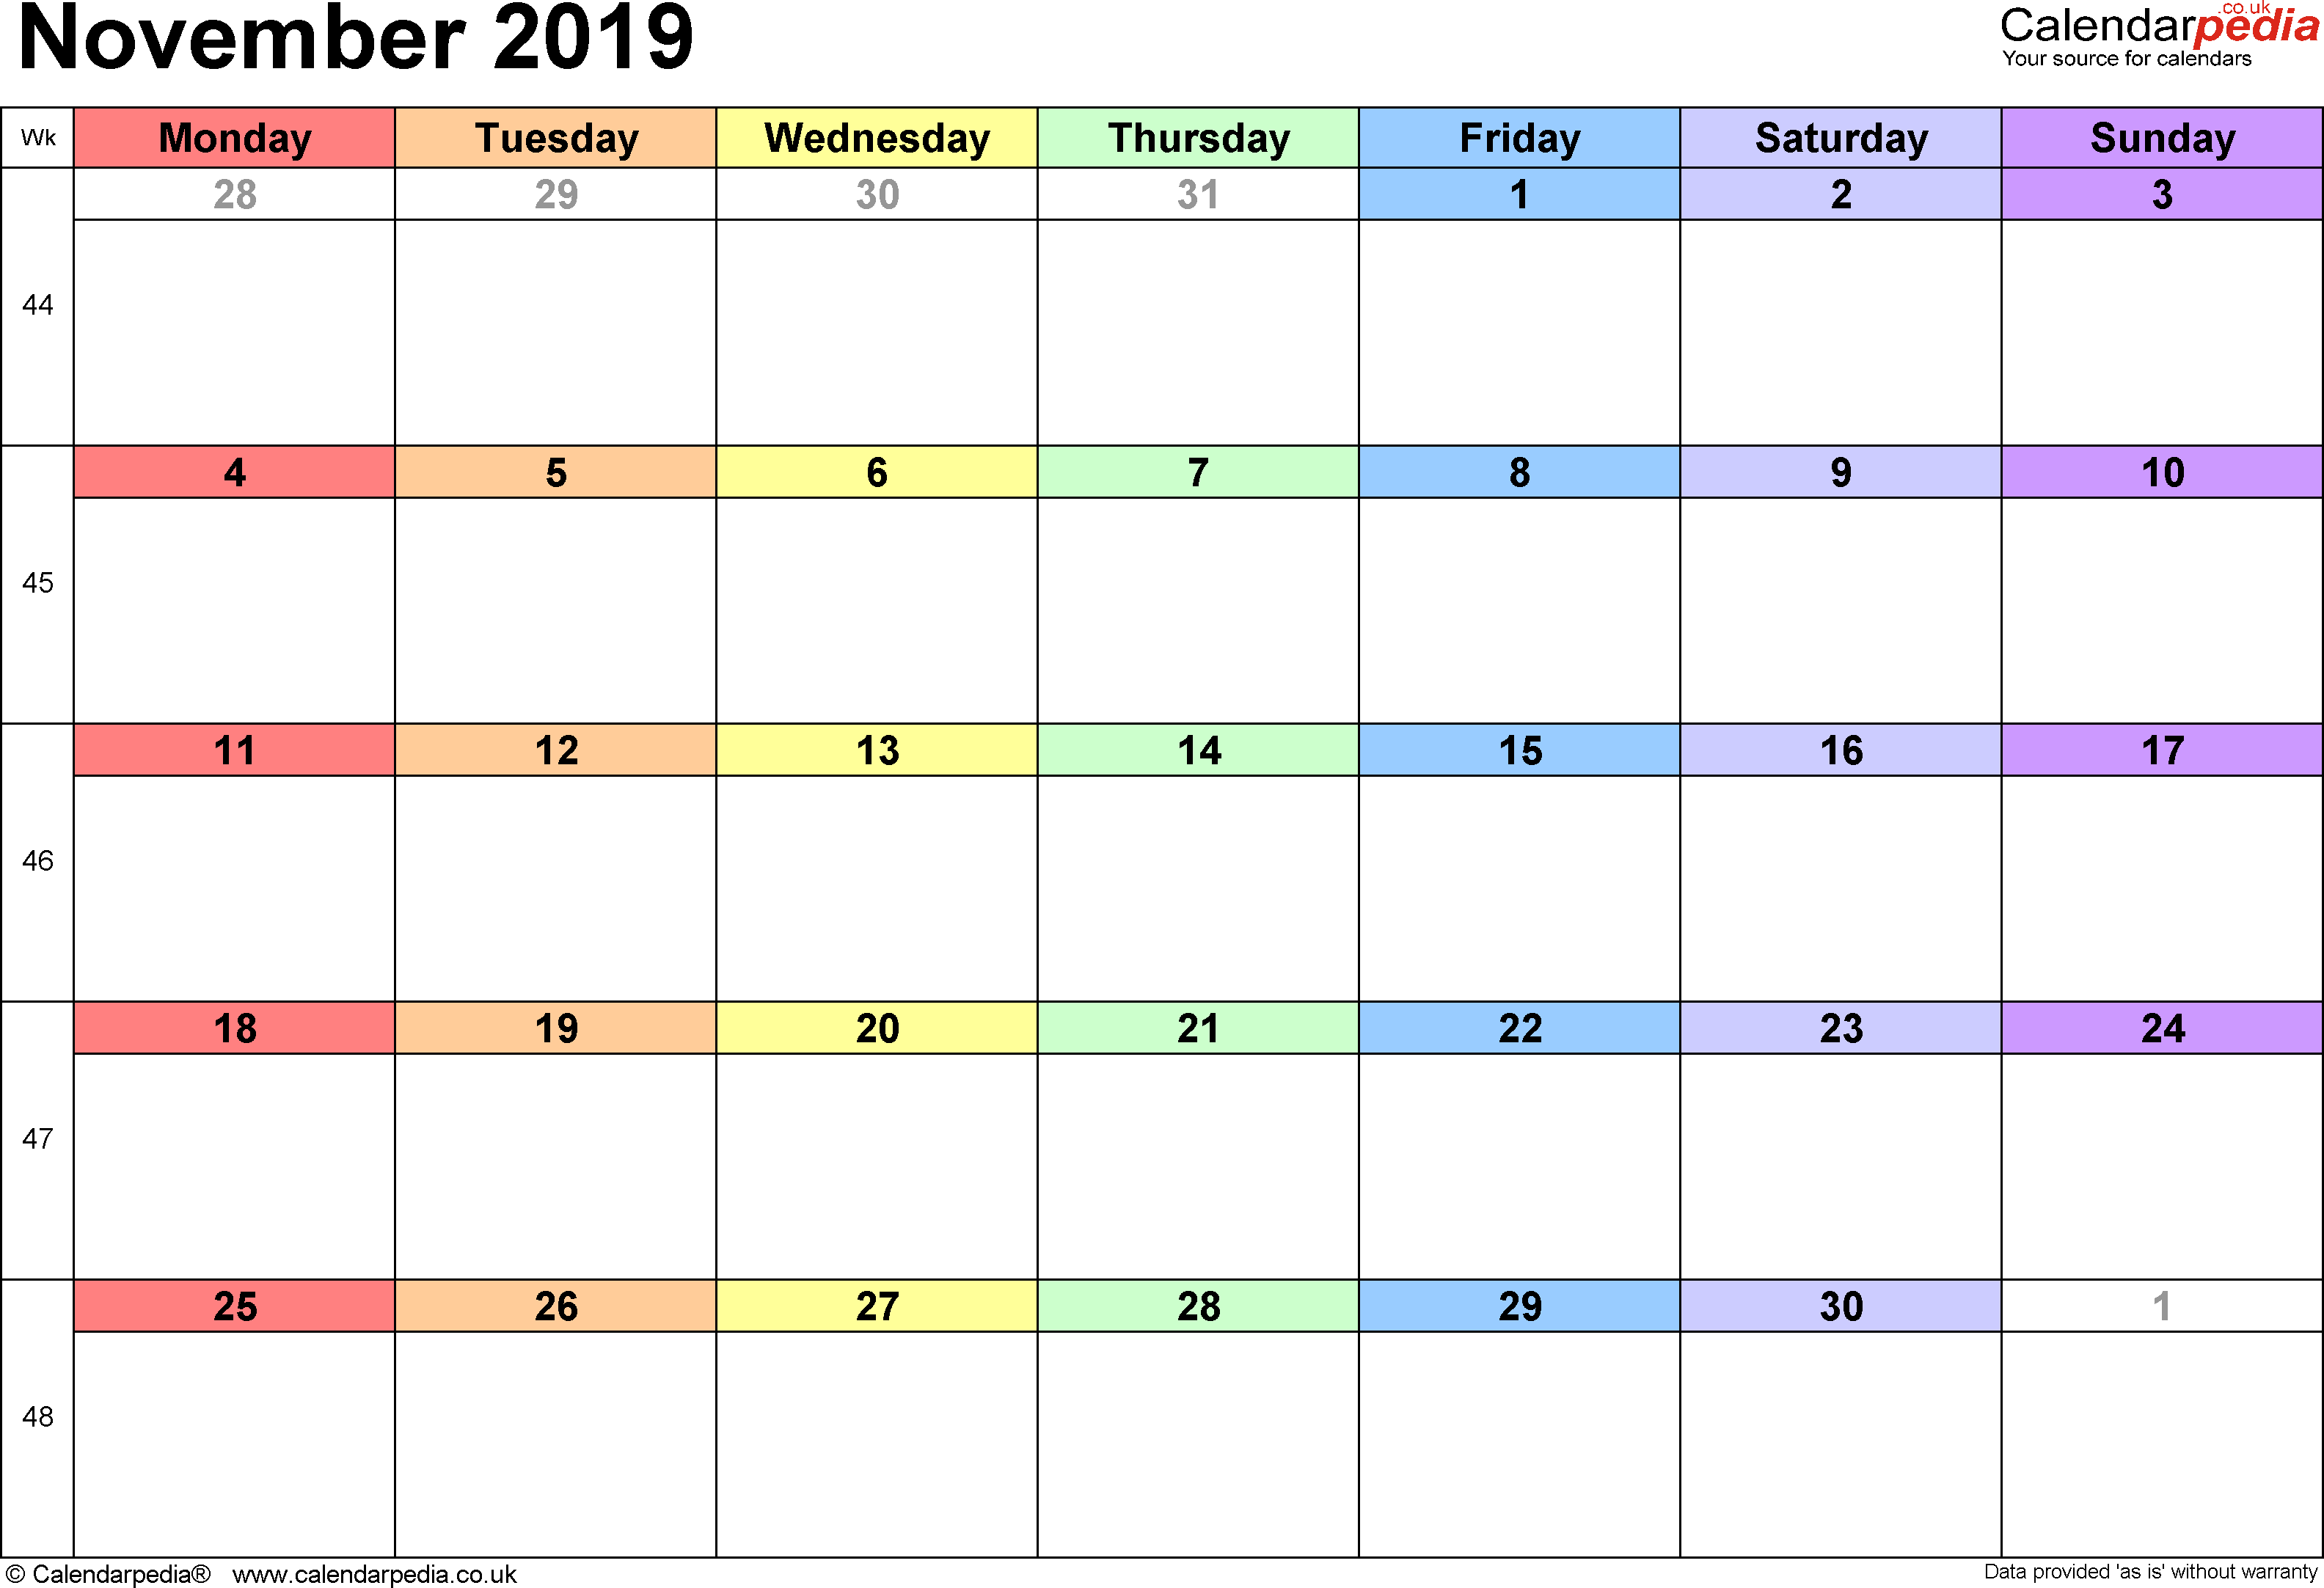 Calendar November 2019, landscape orientation, 1 page, with UK bank holidays and week numbers